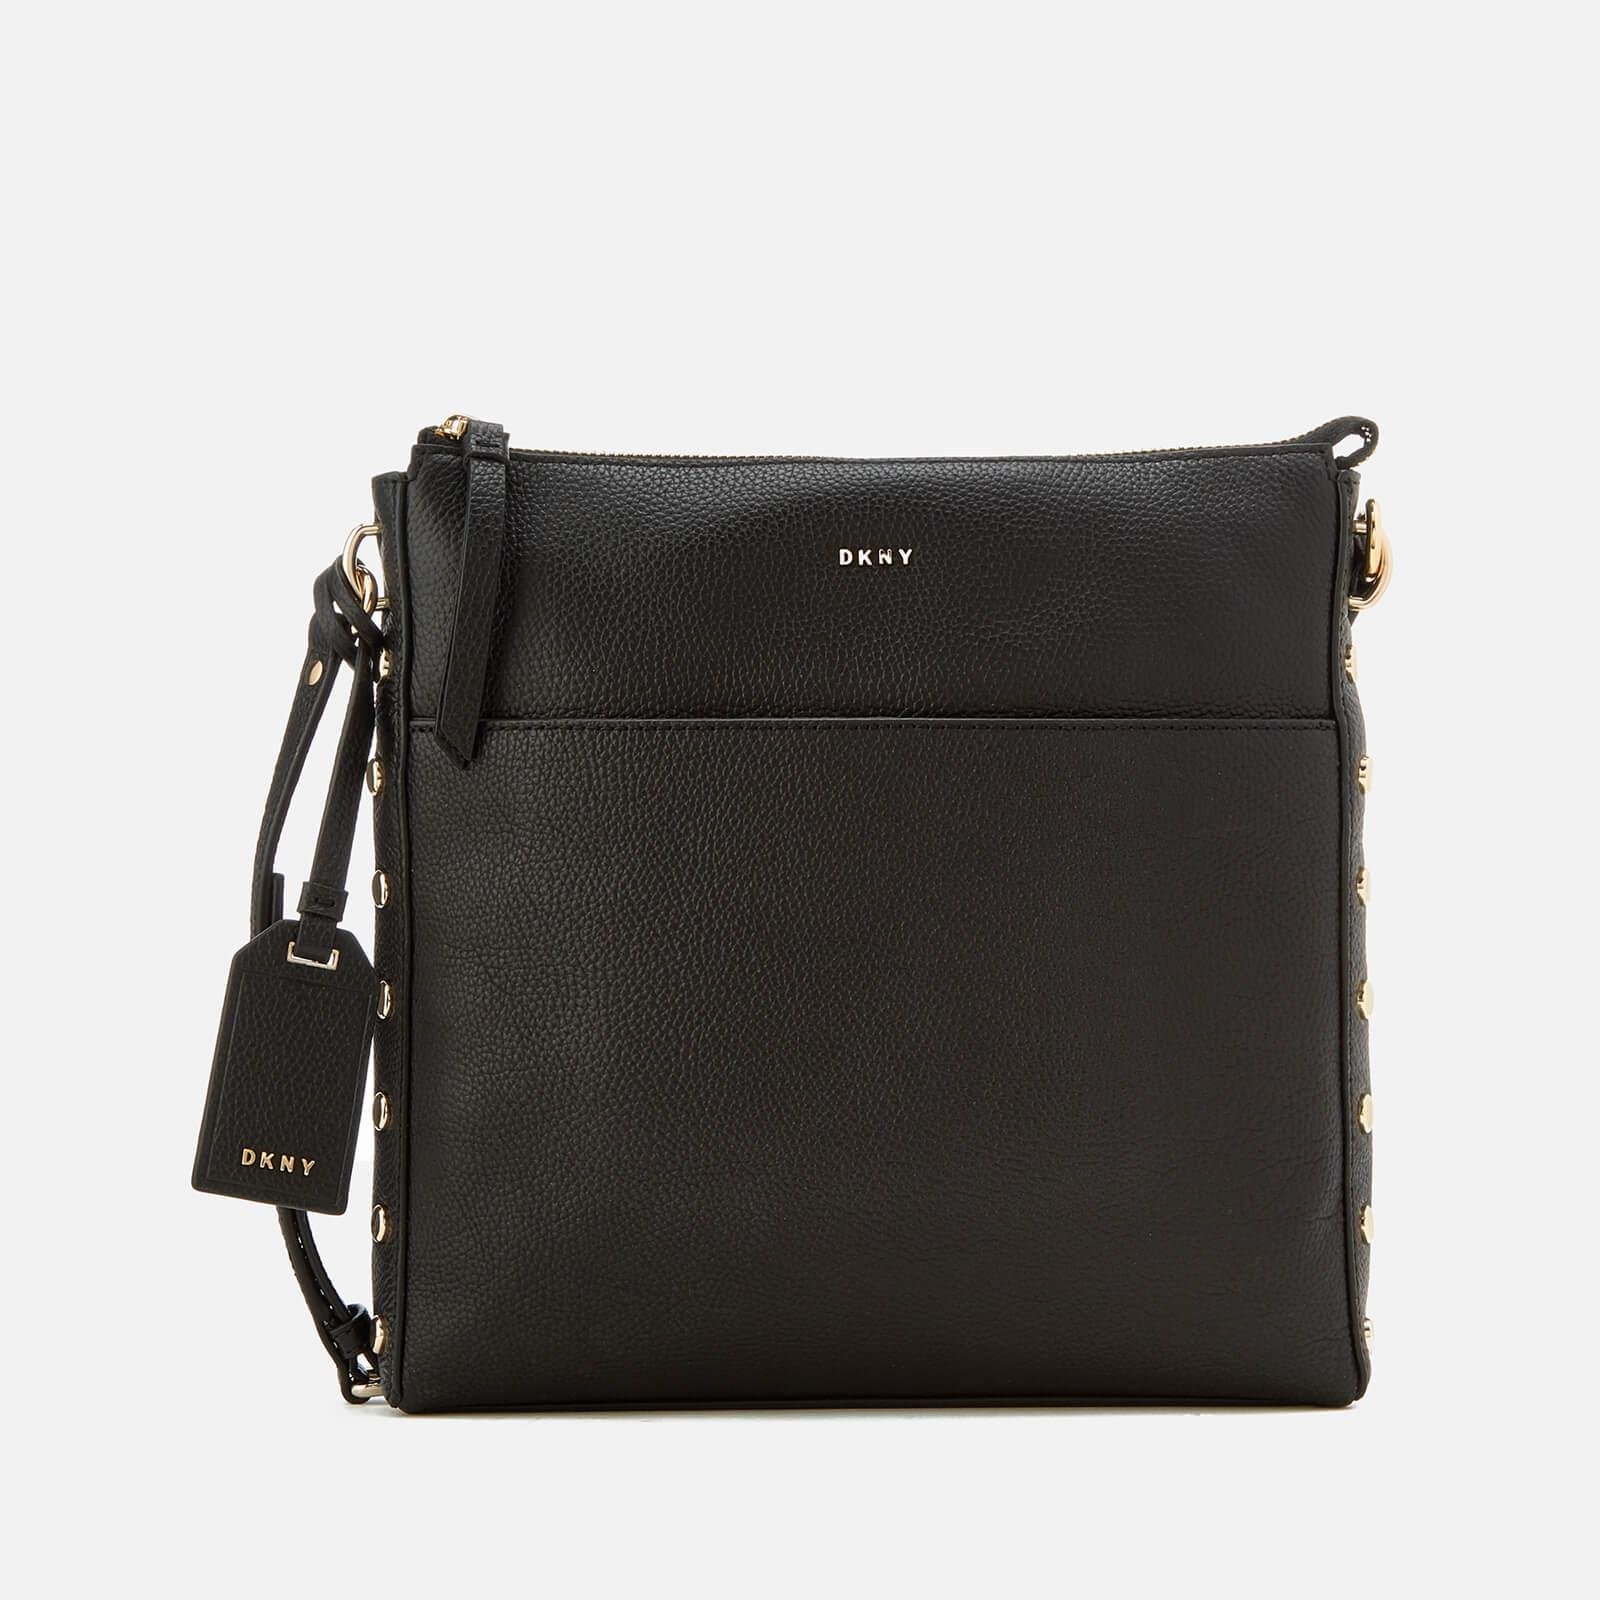 c69a417ace88 Lyst - DKNY Women s Chelsea Pebbled Leather Top Zip Cross Body Bag ...